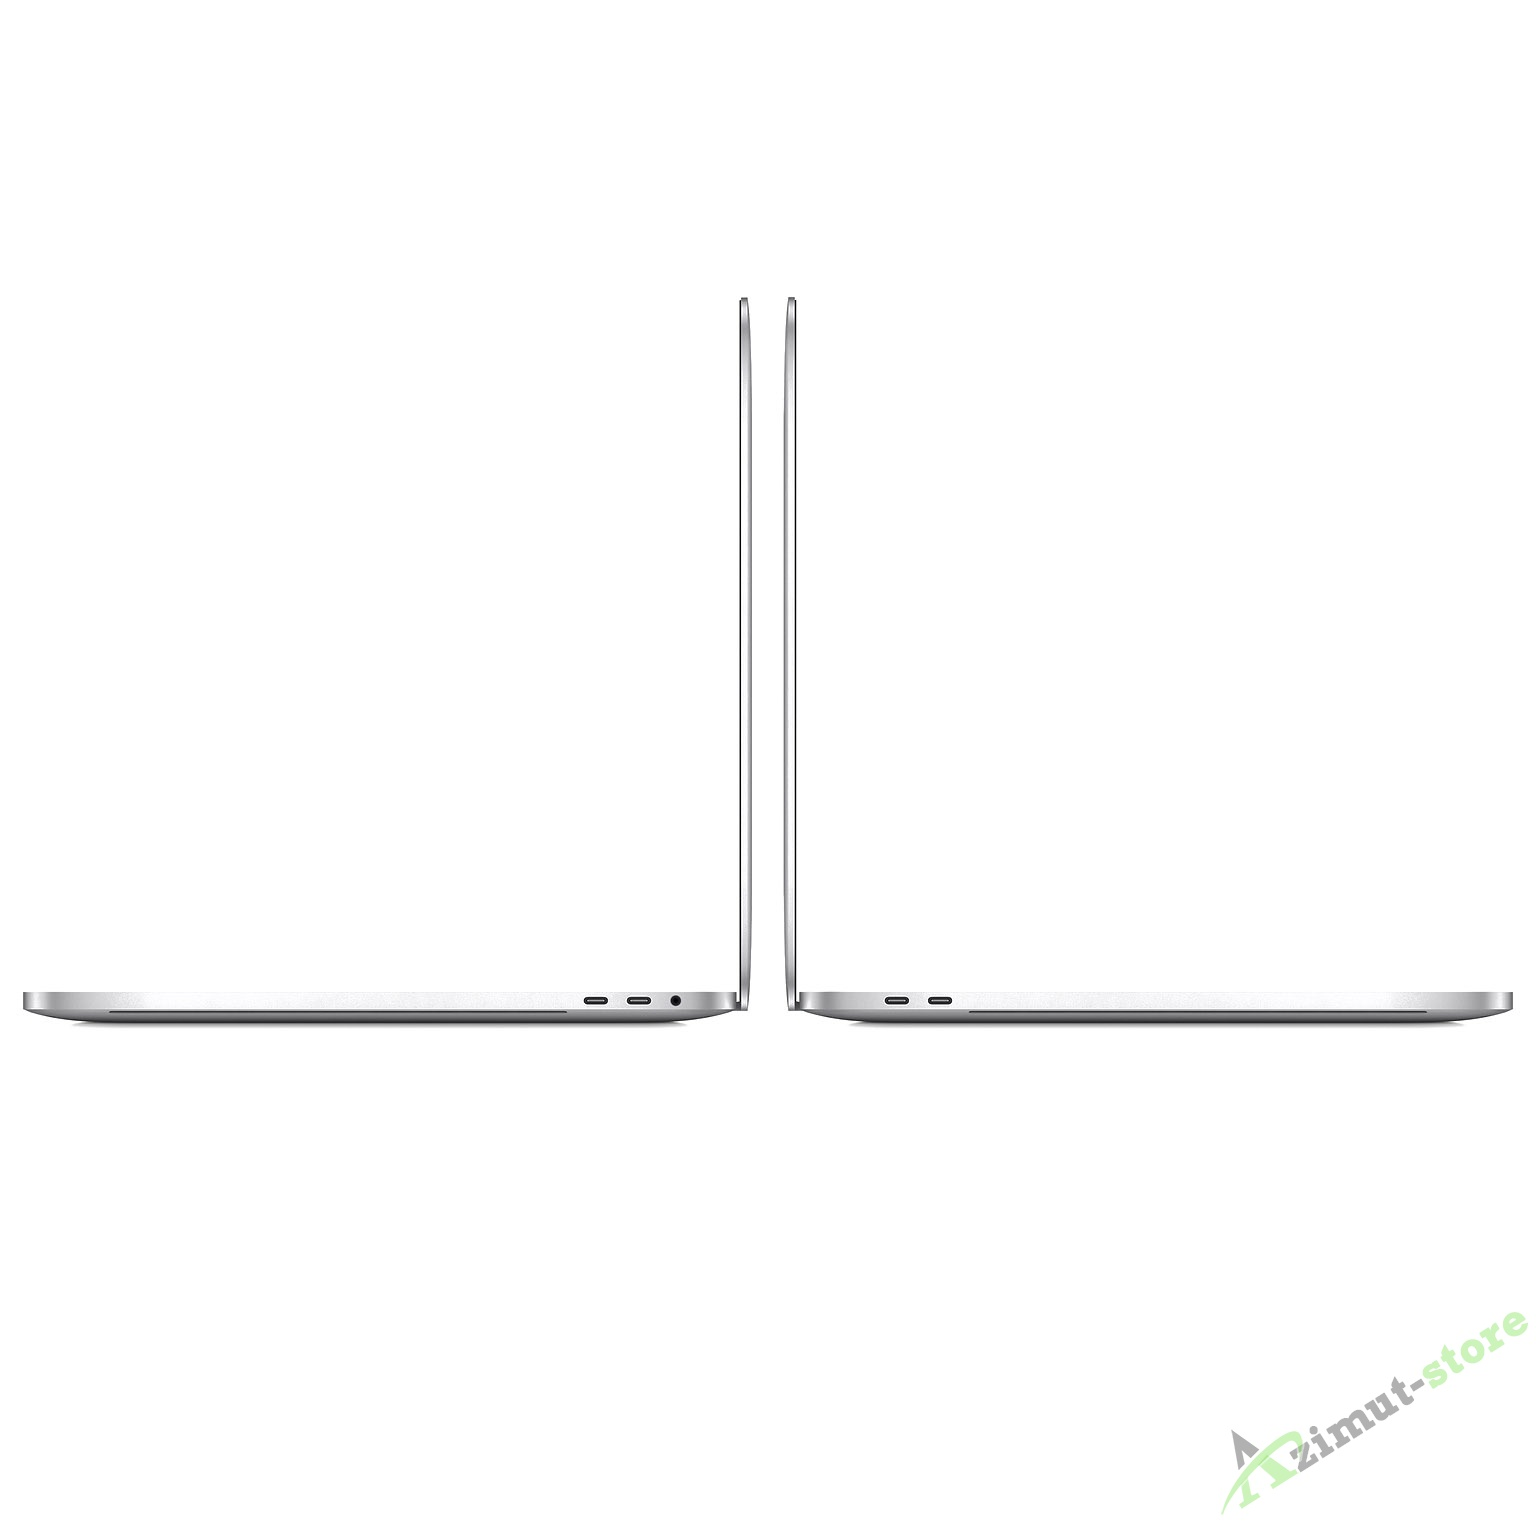 "Ноутбук Apple MacBook Pro 16 with Retina display Mid 2019 MVVL2RU/A Silver (Intel Core i7 2600 MHz/16""/3072 x1920/16GB/512GB SSD/DVD нет/AMD Radeon Pro 5300M/Wi-Fi/Bluetooth/macOS) РСТ"